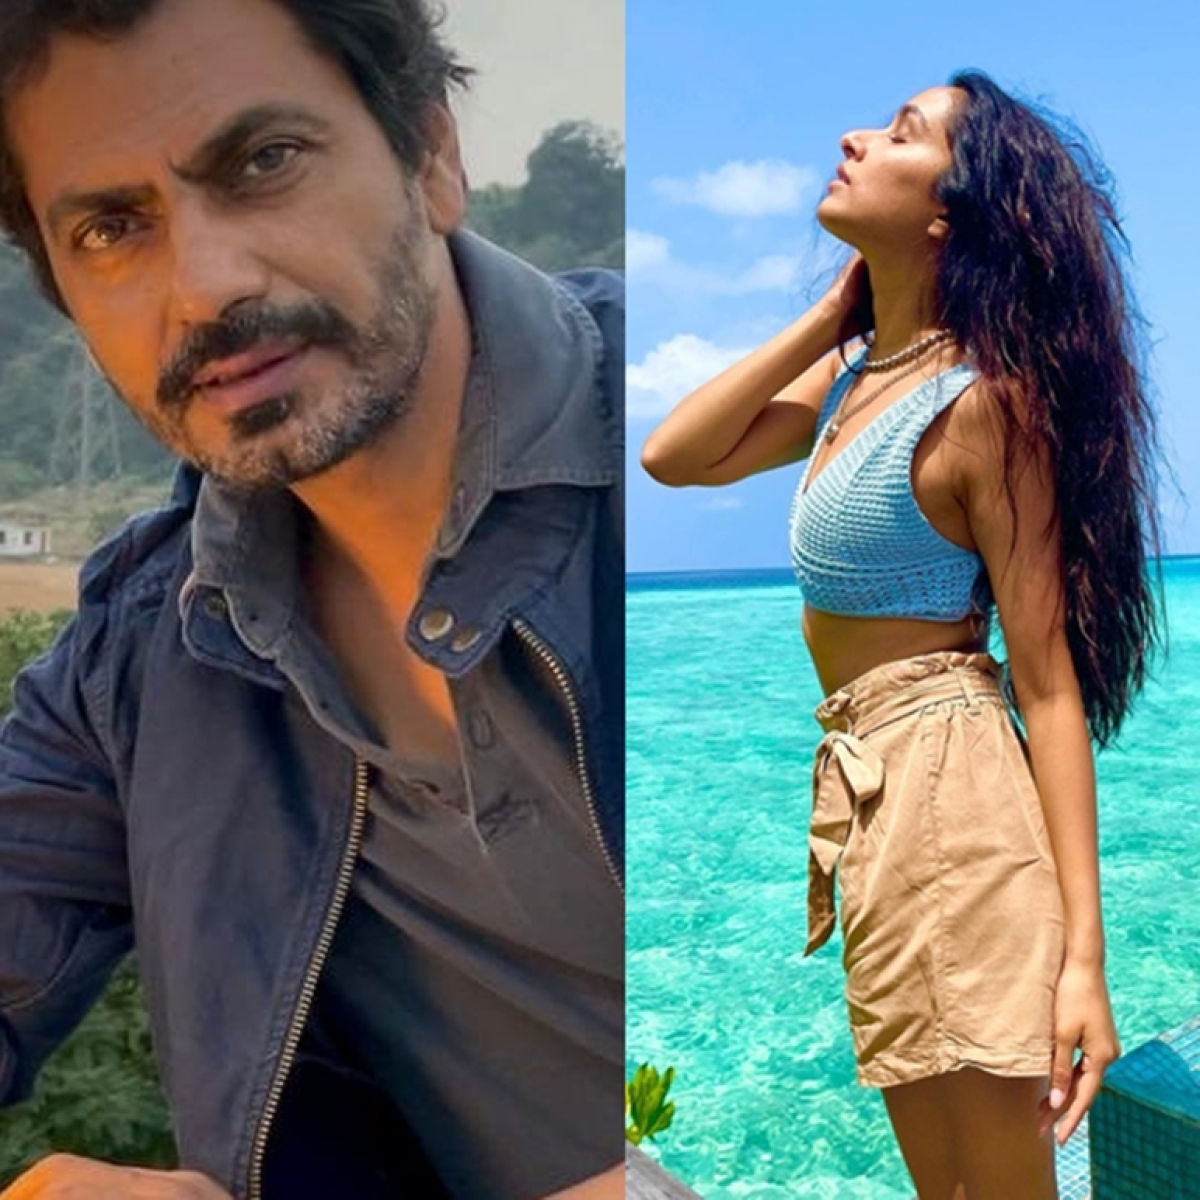 'Kuch toh sharm karo': Nawazuddin Siddiqui slams celebs vacationing in the Maldives amid COVID-19 crisis